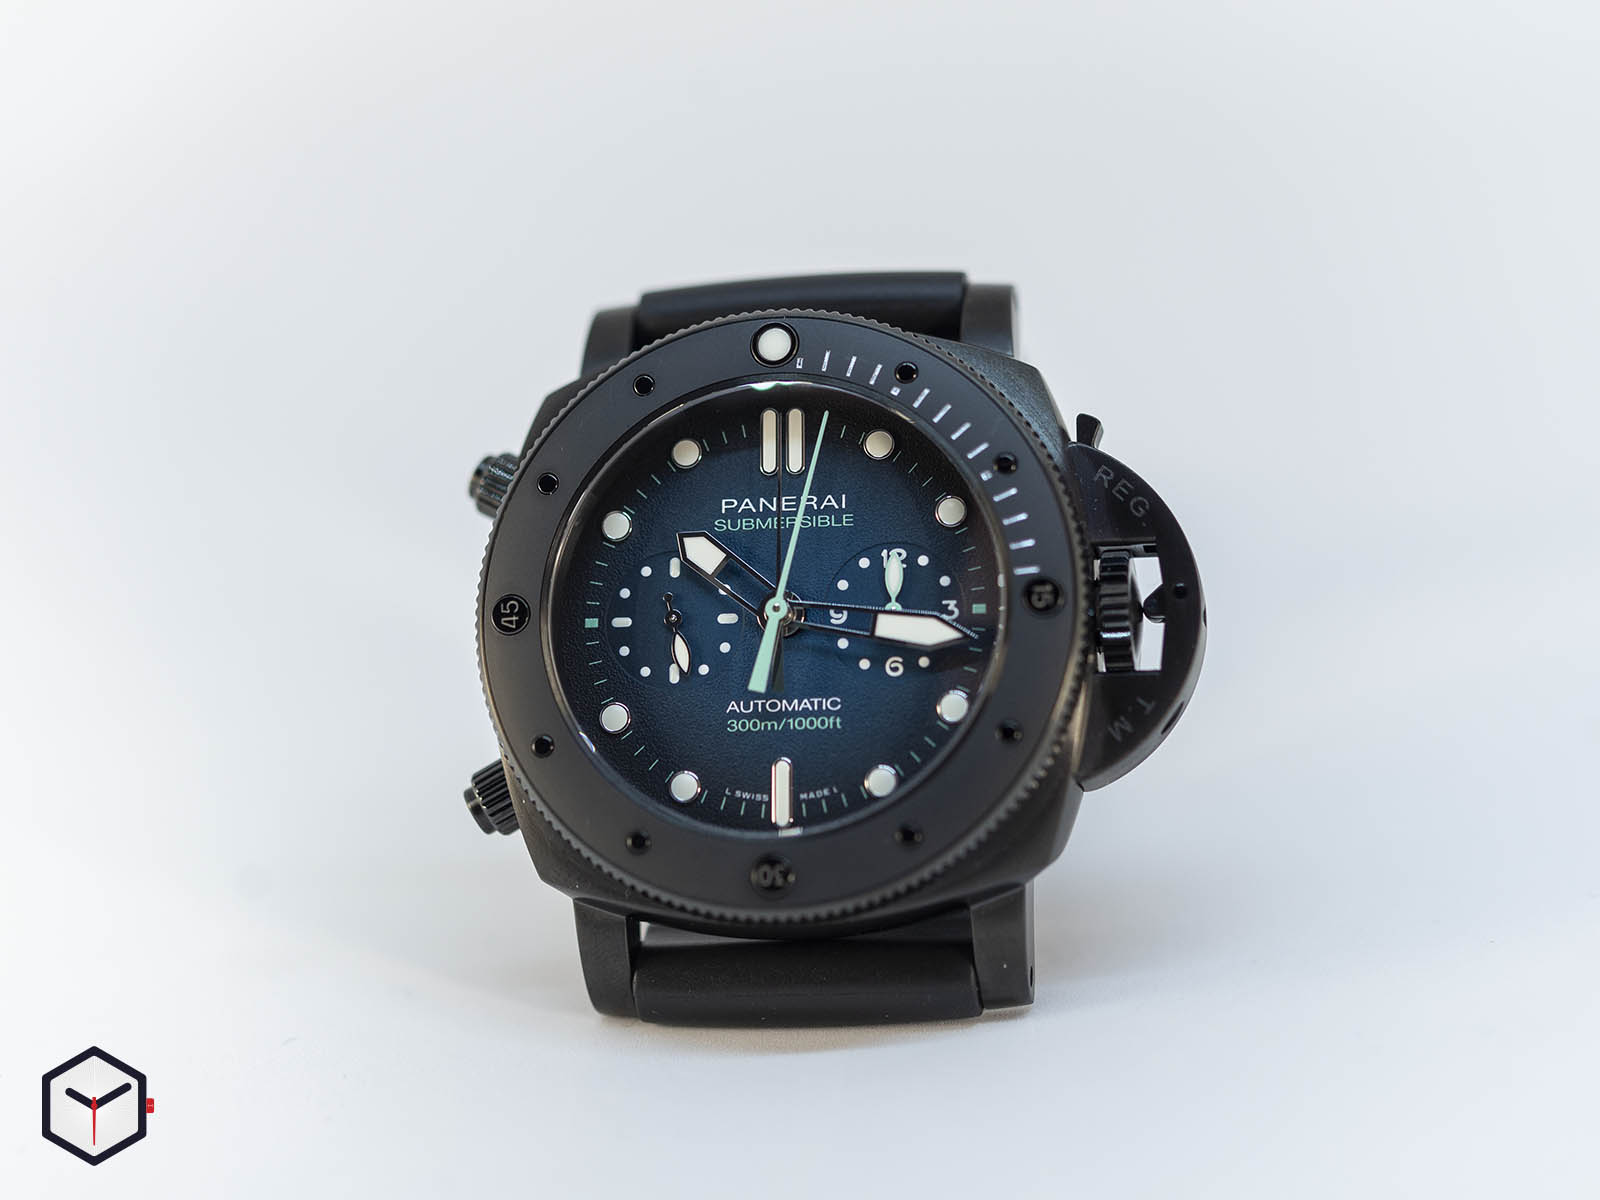 pam00983-officine-panerai-submersible-chrono-guillaume-nery-edition-47mm-sihh-2019-1.jpg